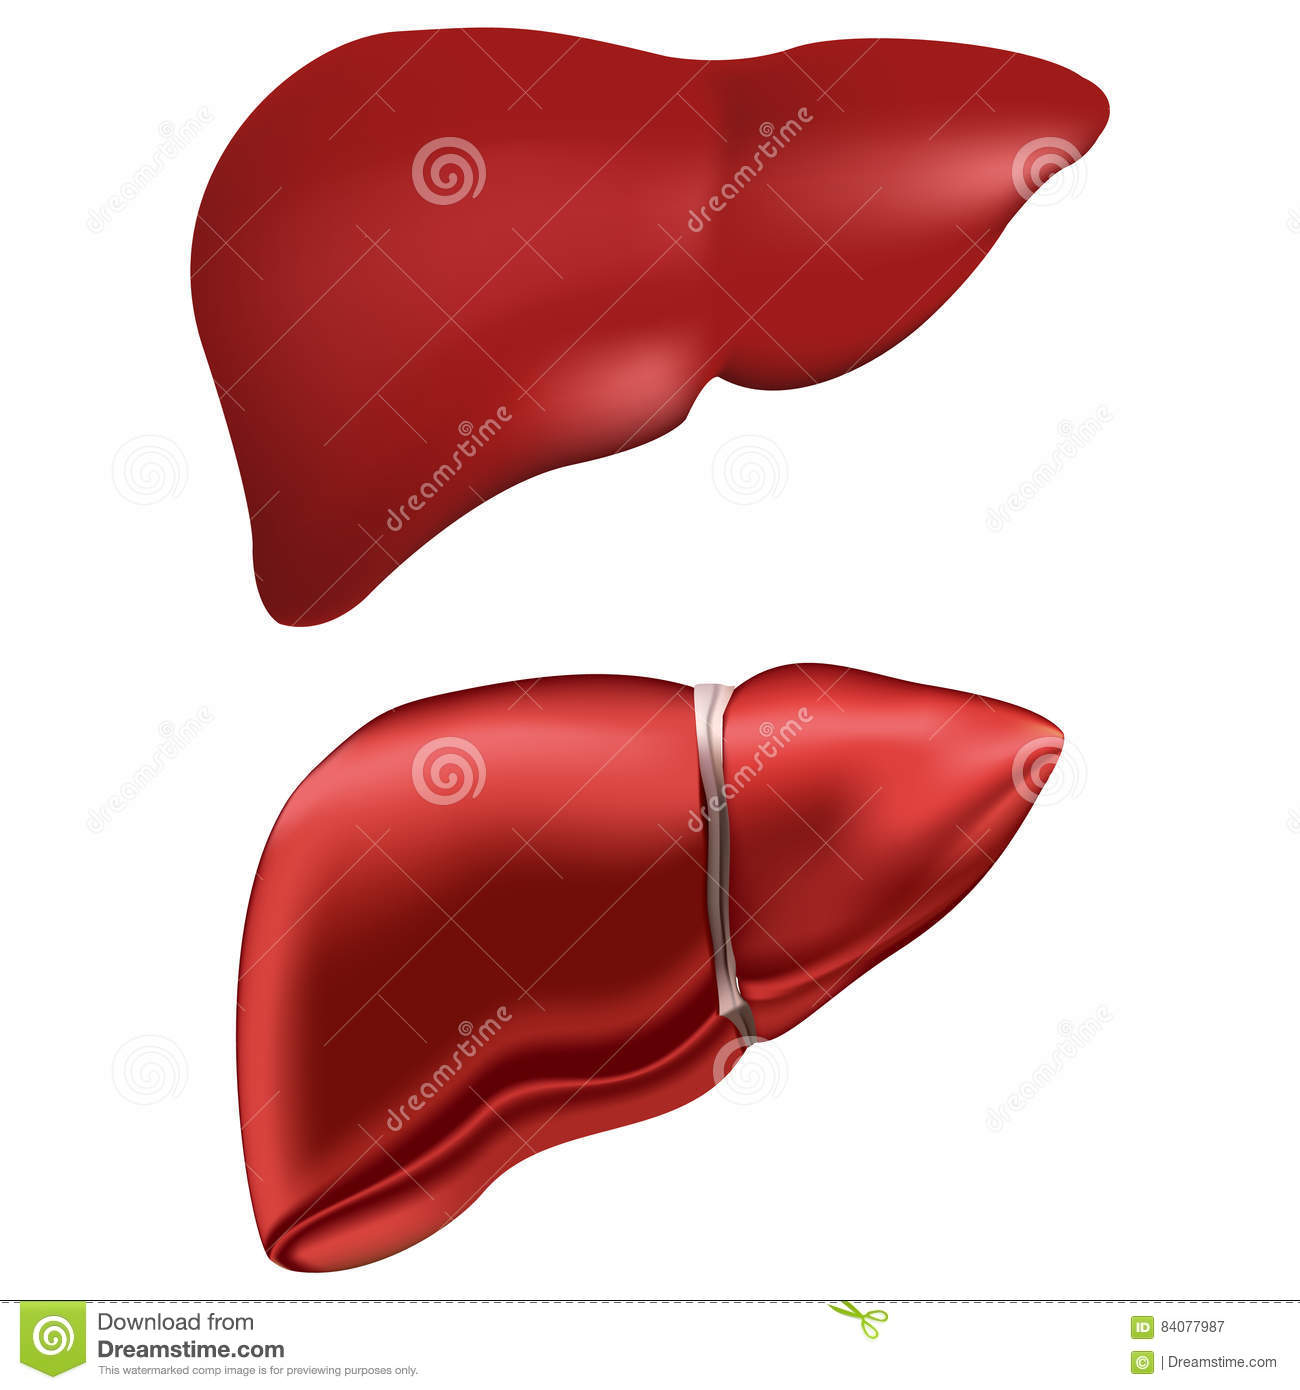 anatomy of human liver pdf